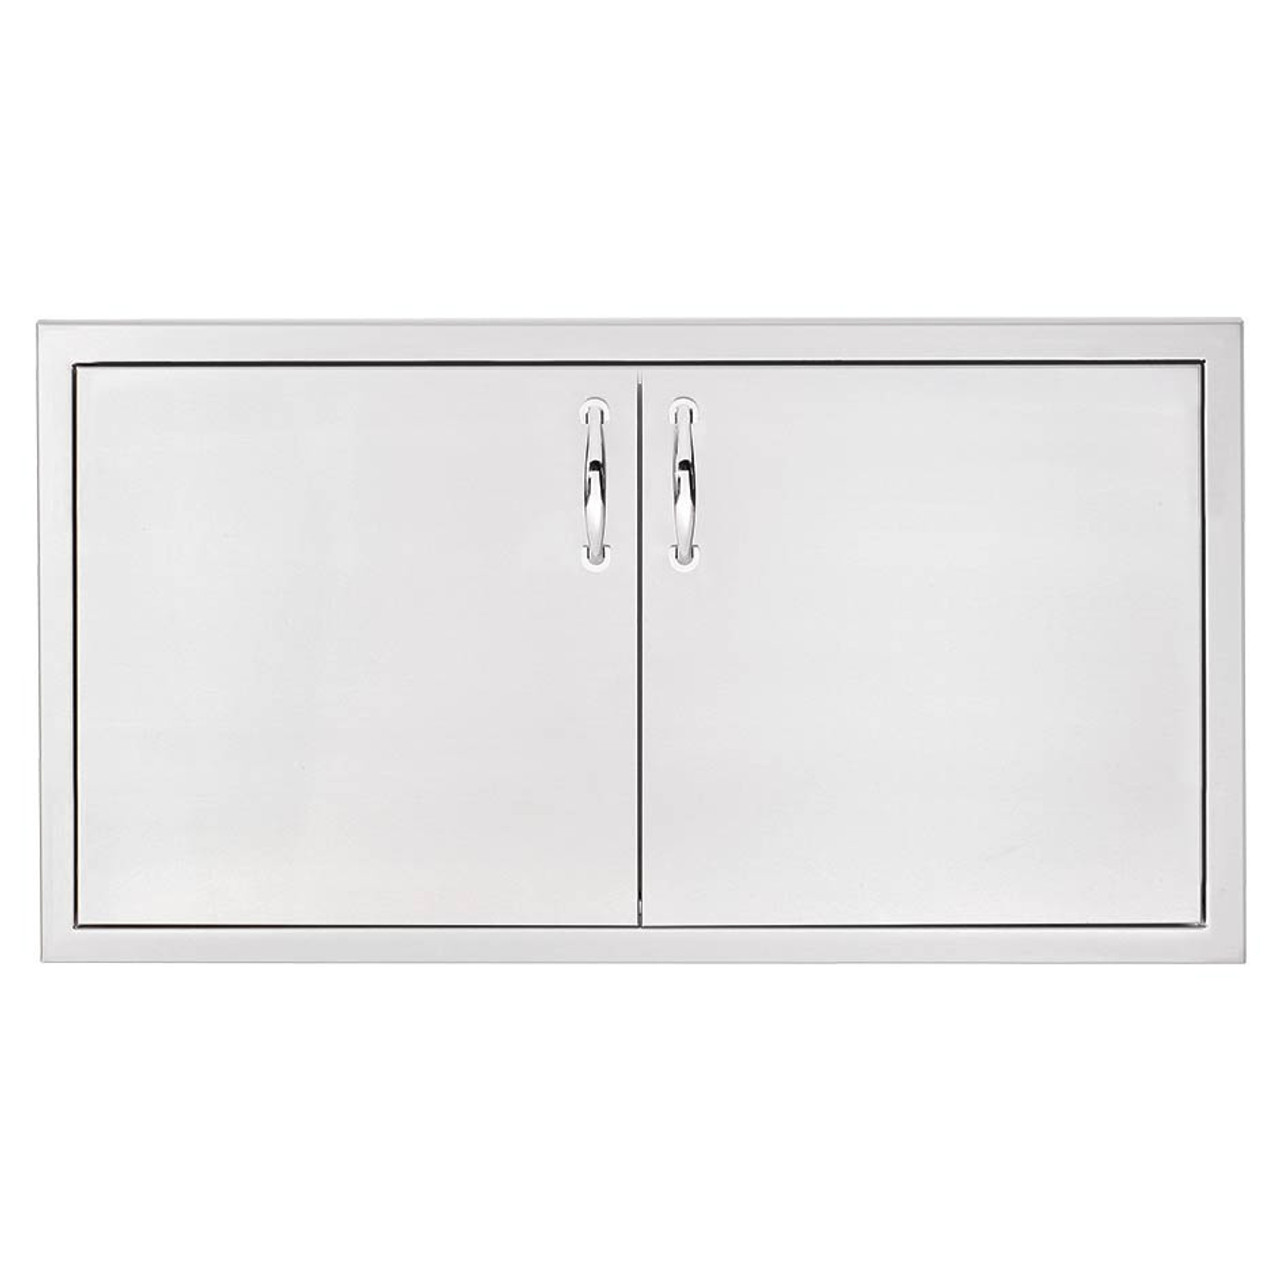 "Summerset 36"" Double Door - Stainless Steel - SSDD-36"